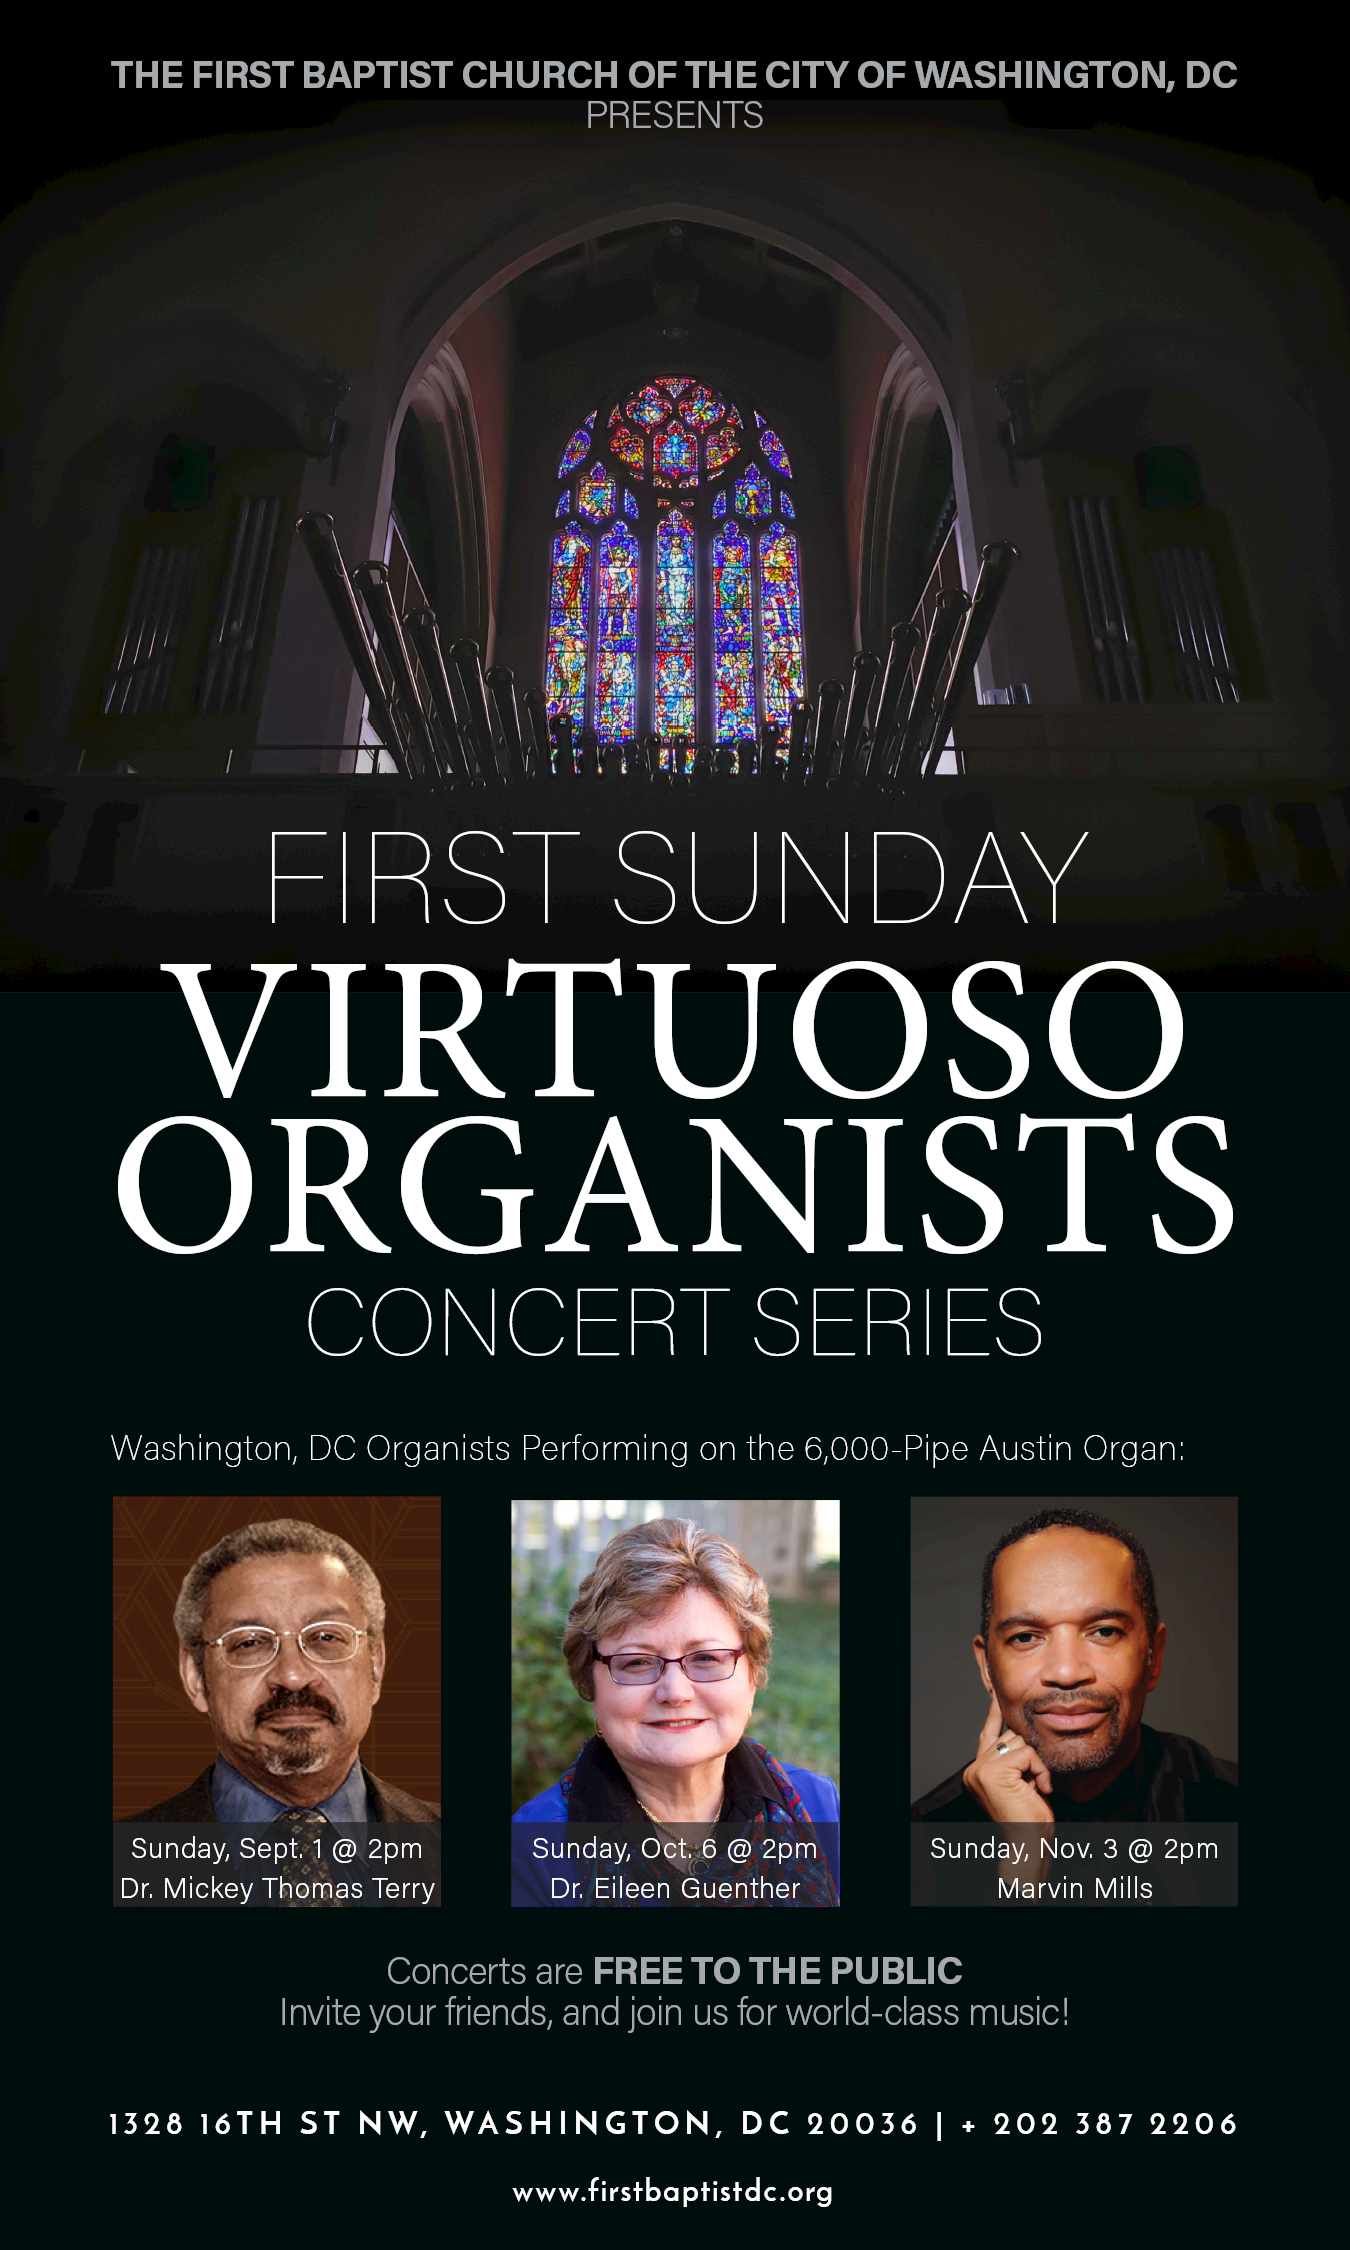 Virtuoso-Organists-Series-Virtuoso-Organists-Series-Master-4.5x7.5x300.png